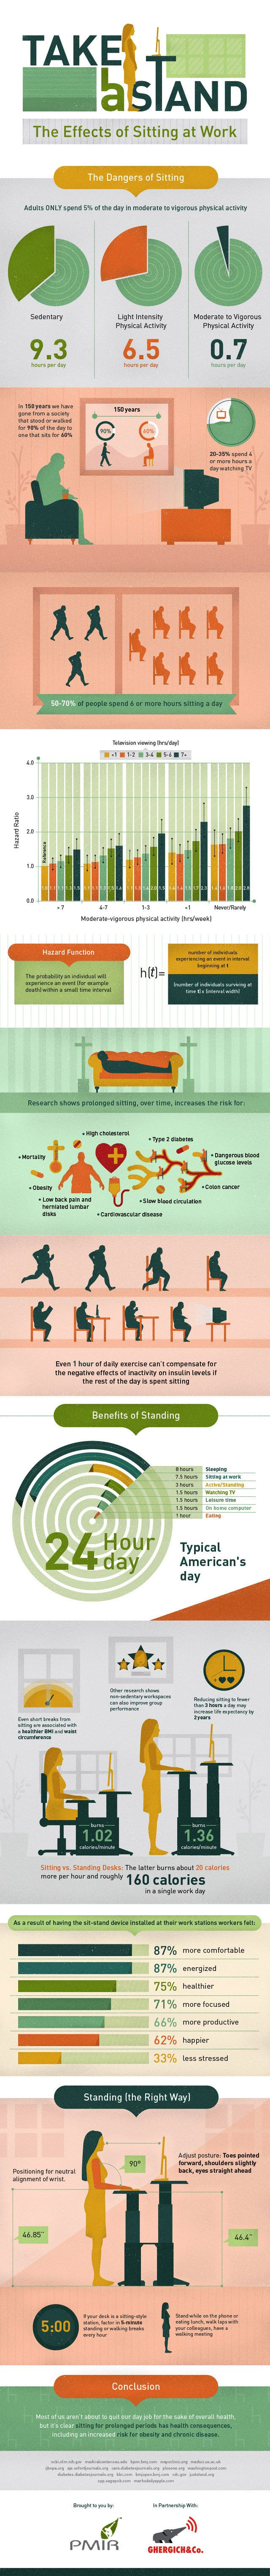 Sitting All Day Is Really, Really Bad For You (Infographic) #health #getmovin